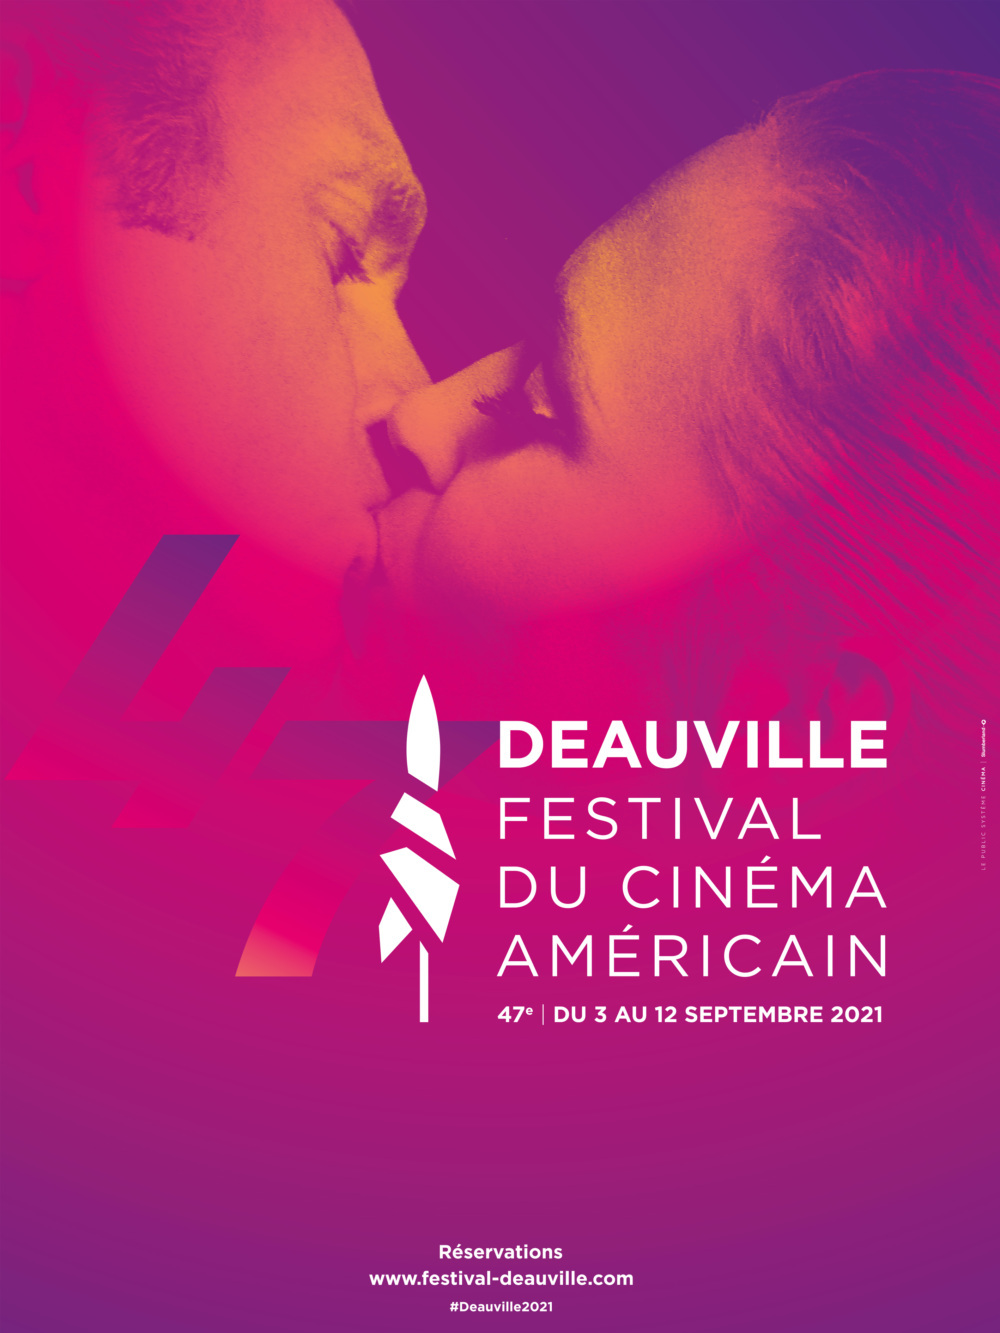 Deauville Fest to Reteam With Cannes; Launch French Films Strand